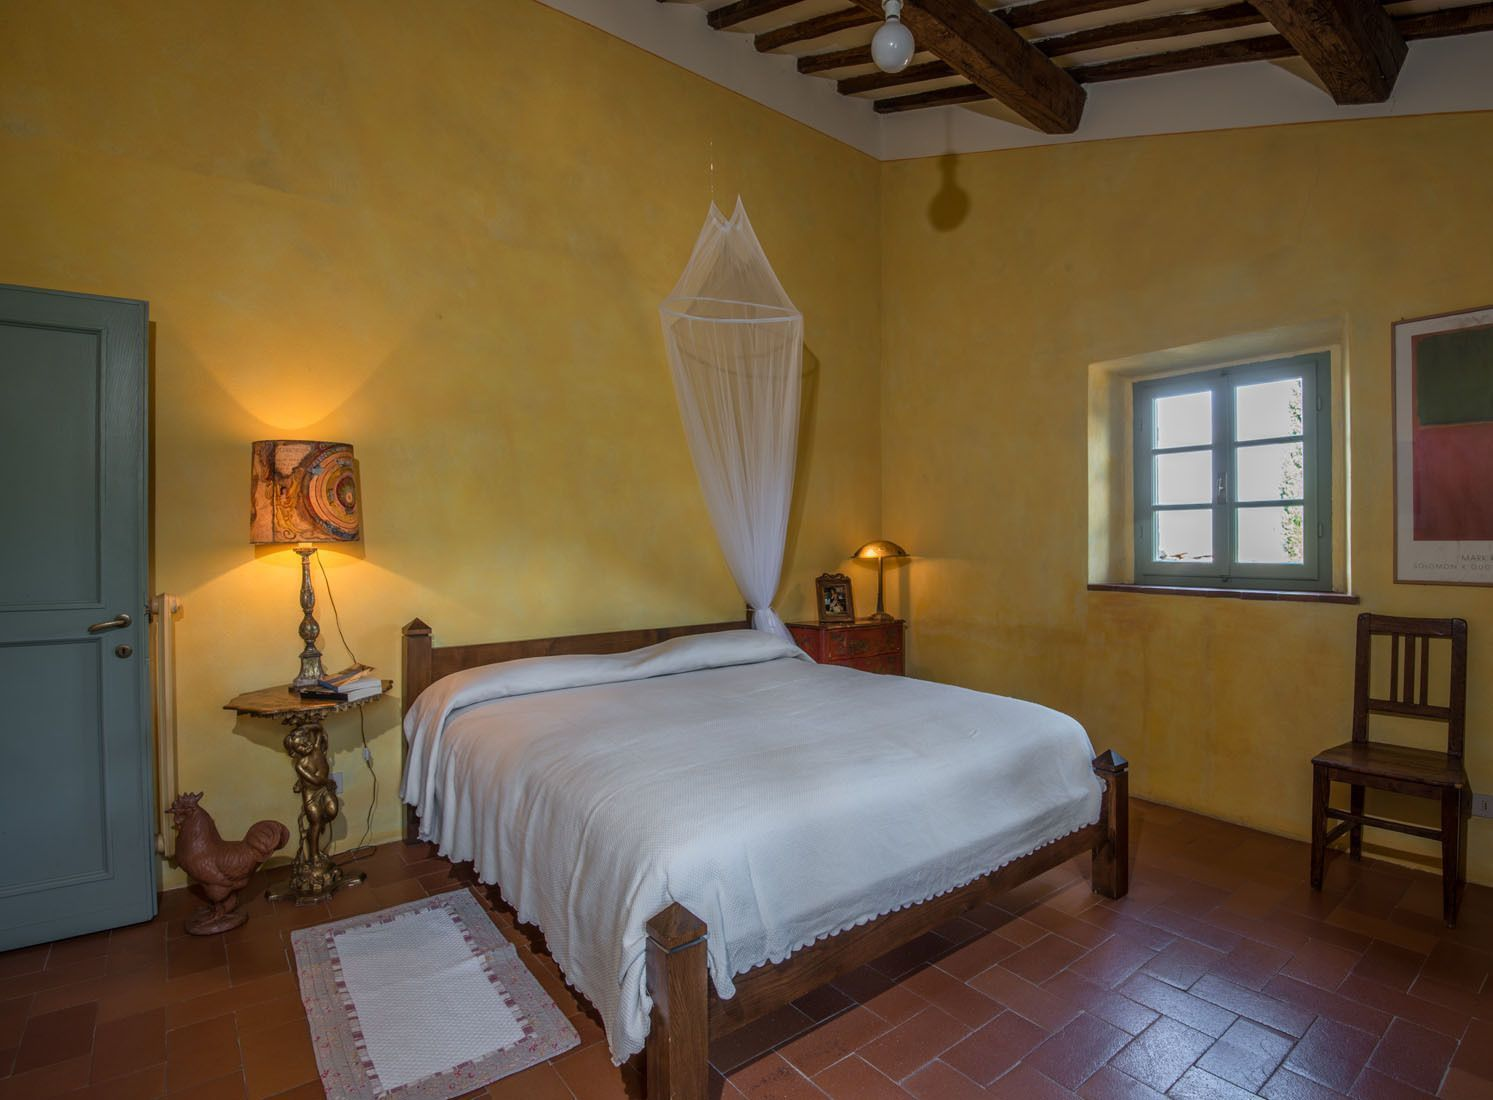 villa vacation rental campassole that sleeps 9 people in 5 bedrooms